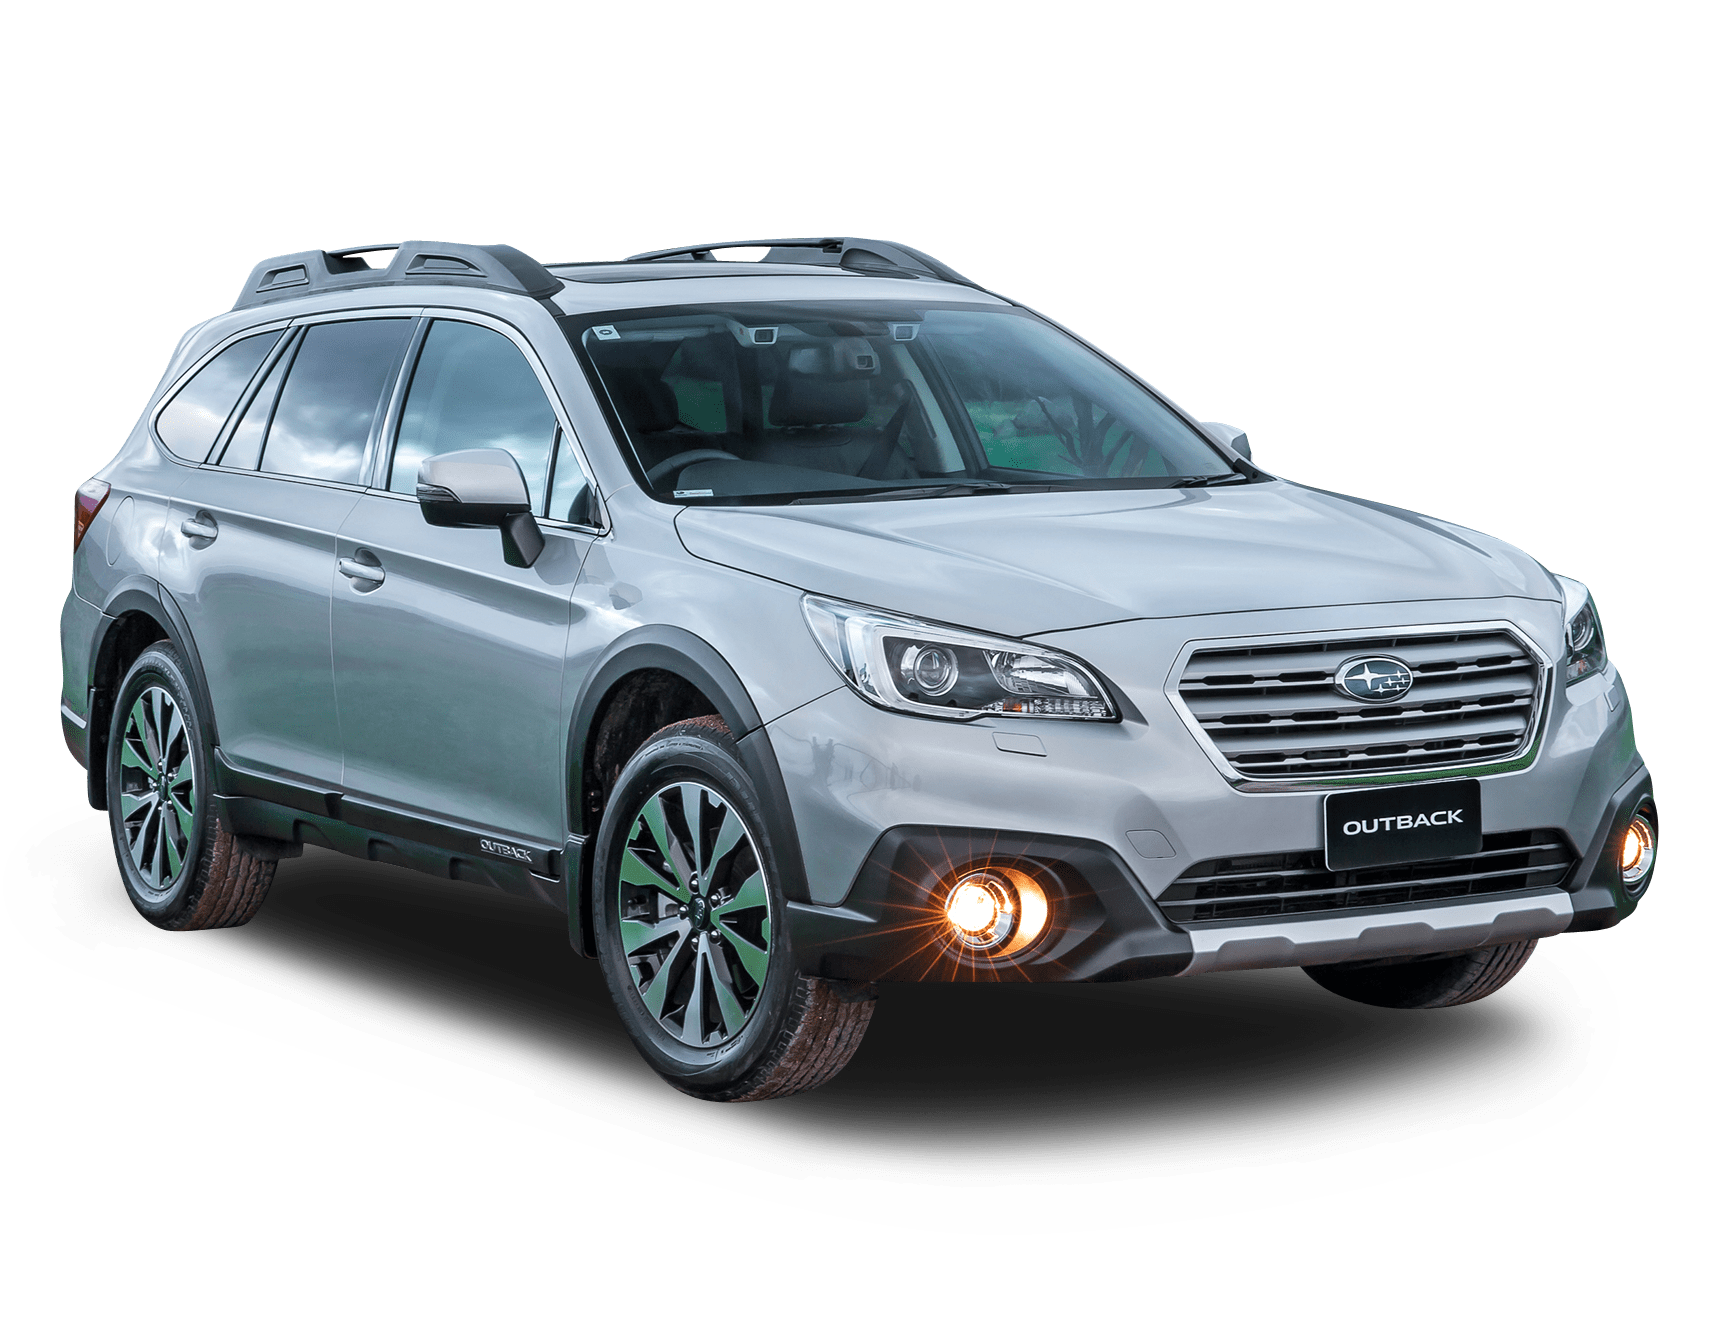 Subaru Outback Review For Sale Price Colours Models